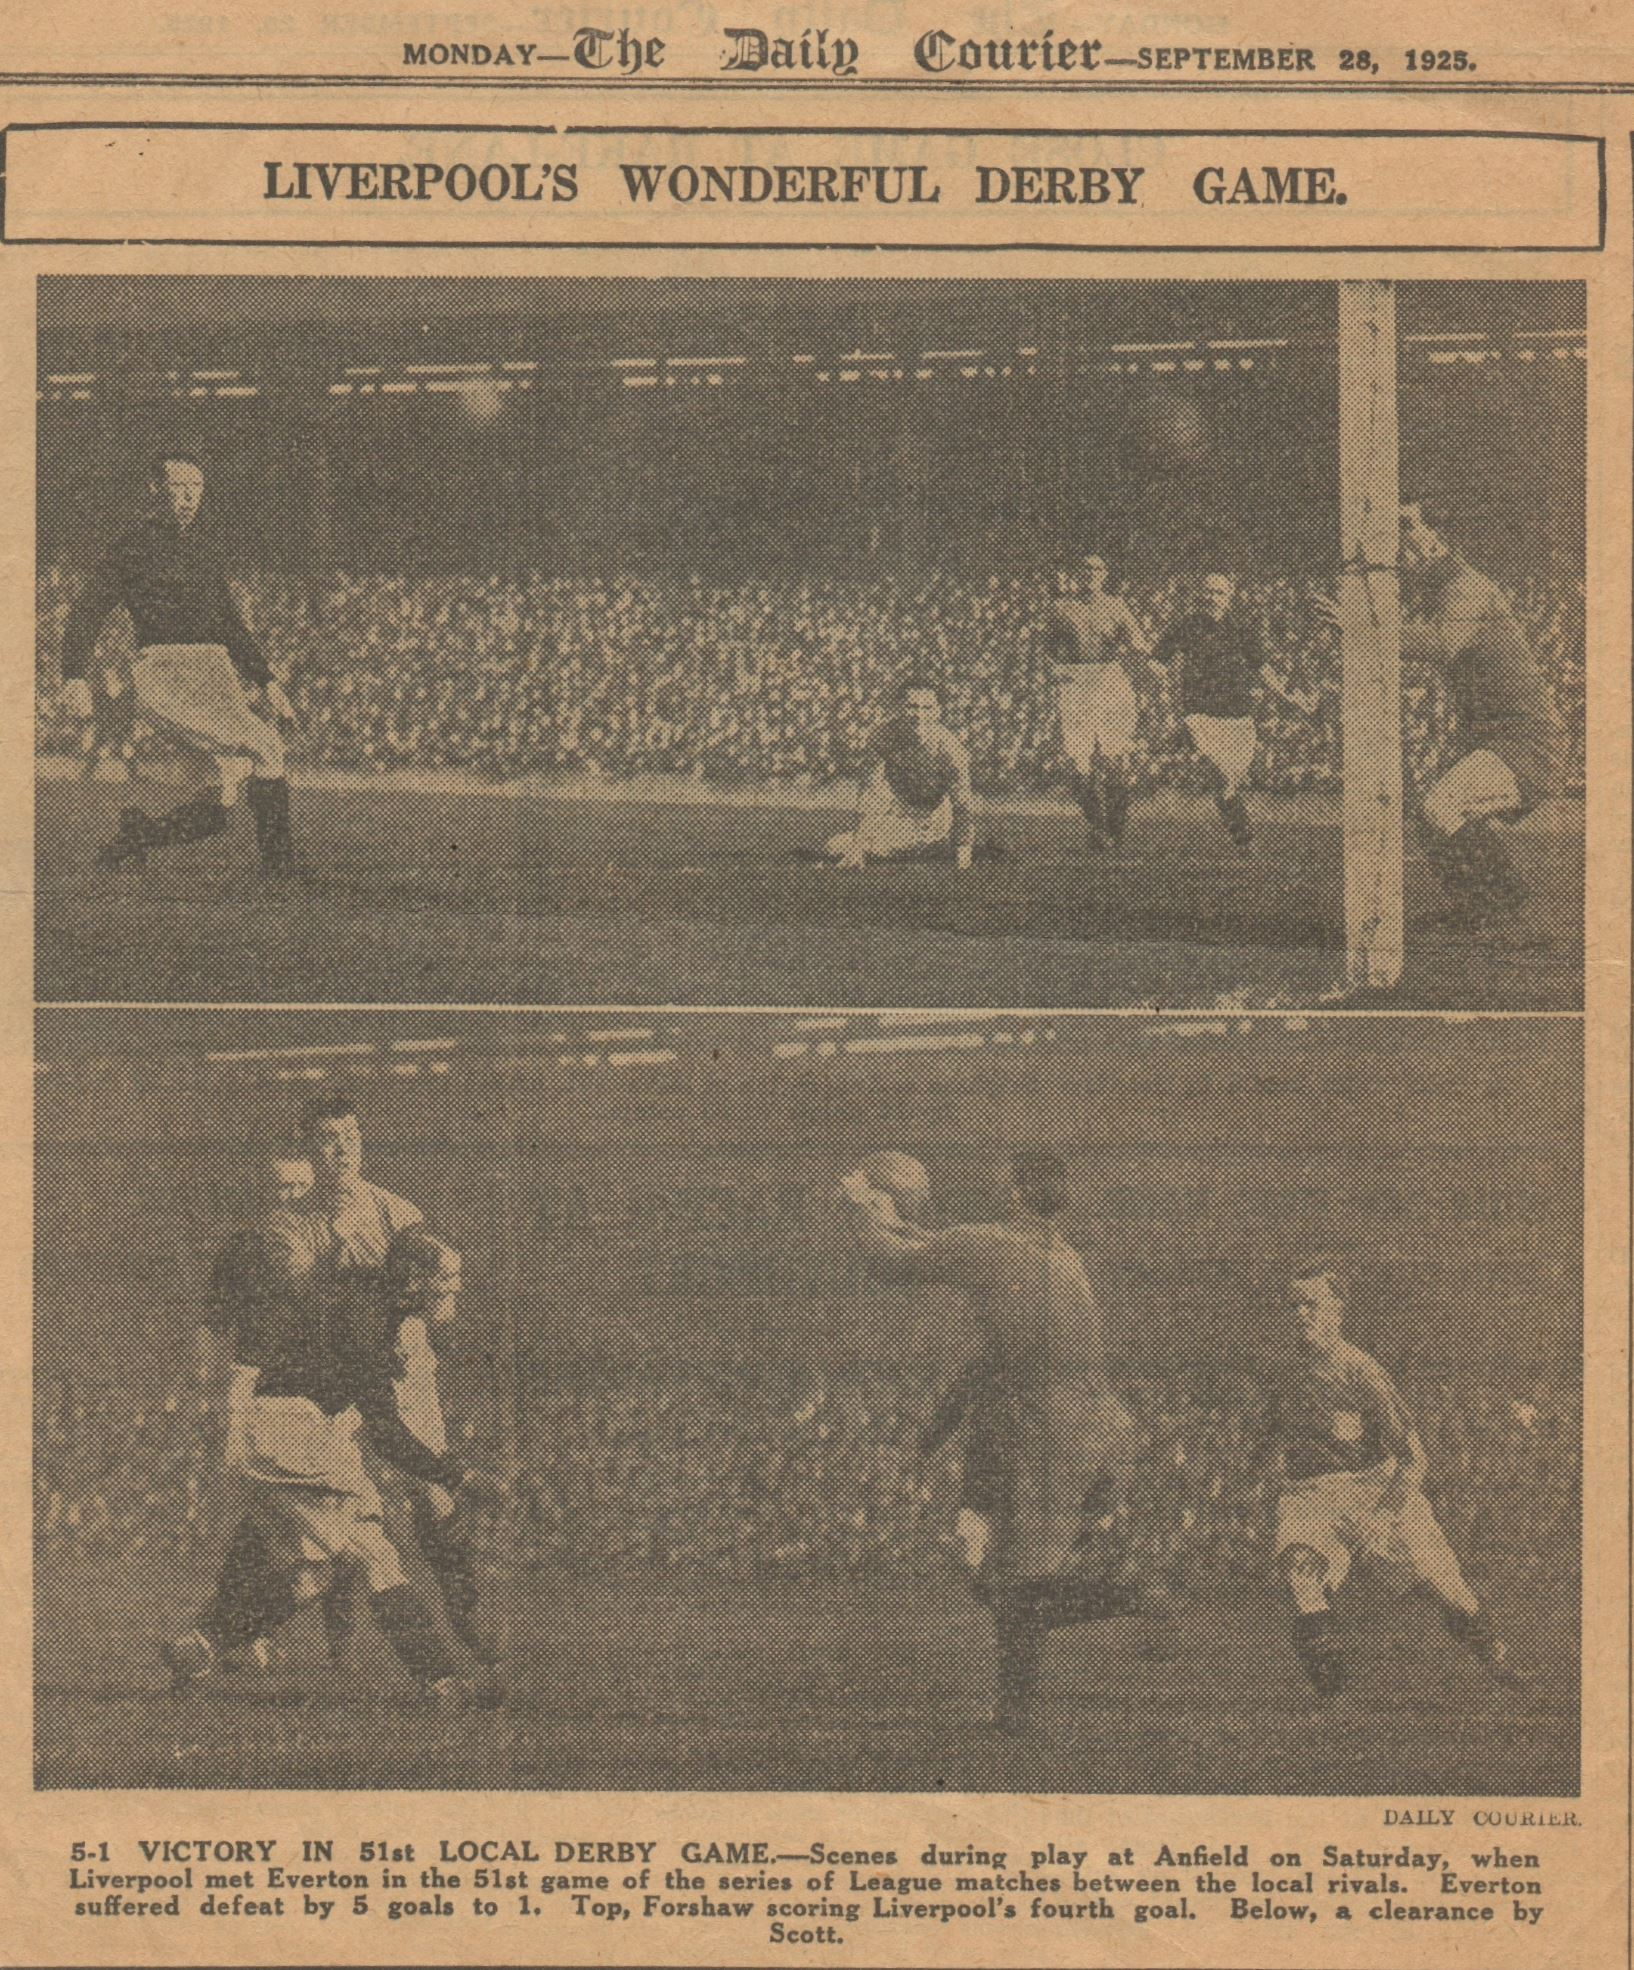 Liverpool's wonderful derby game - 26 September 1925